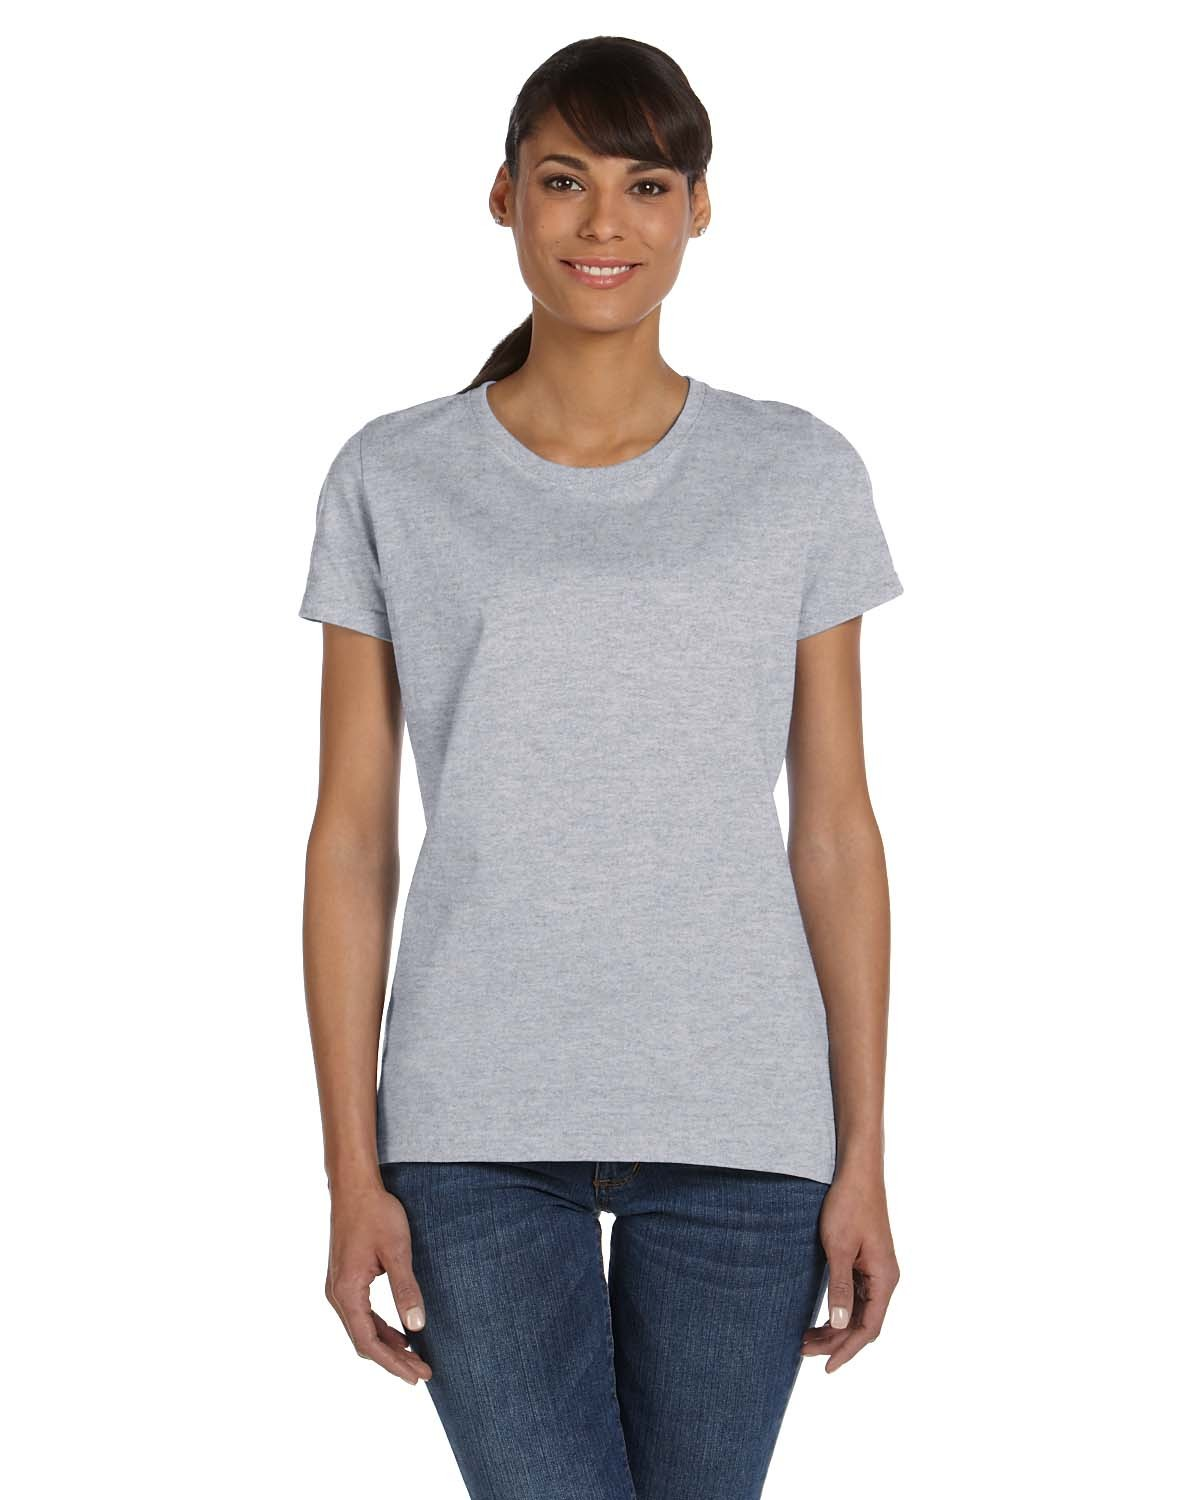 L3930R Fruit of the Loom ATHLETIC HEATHER